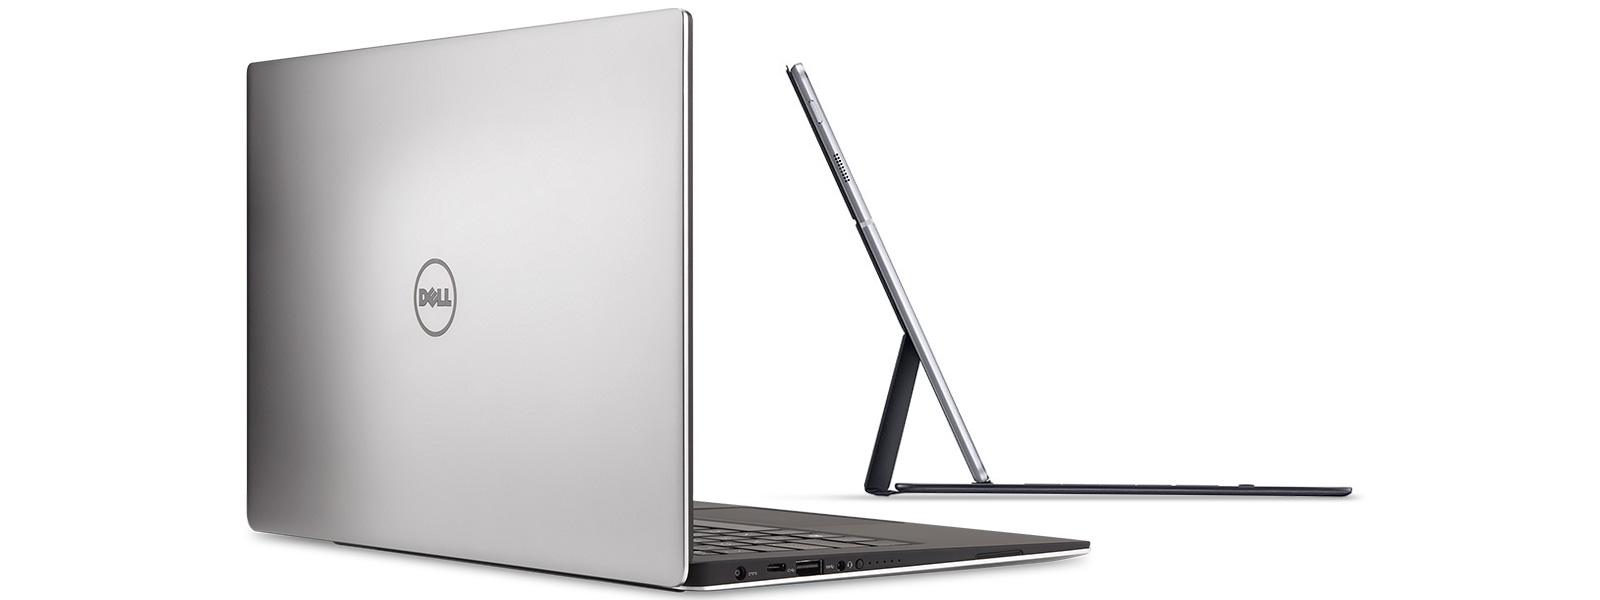 Windows 10 Dell laptop